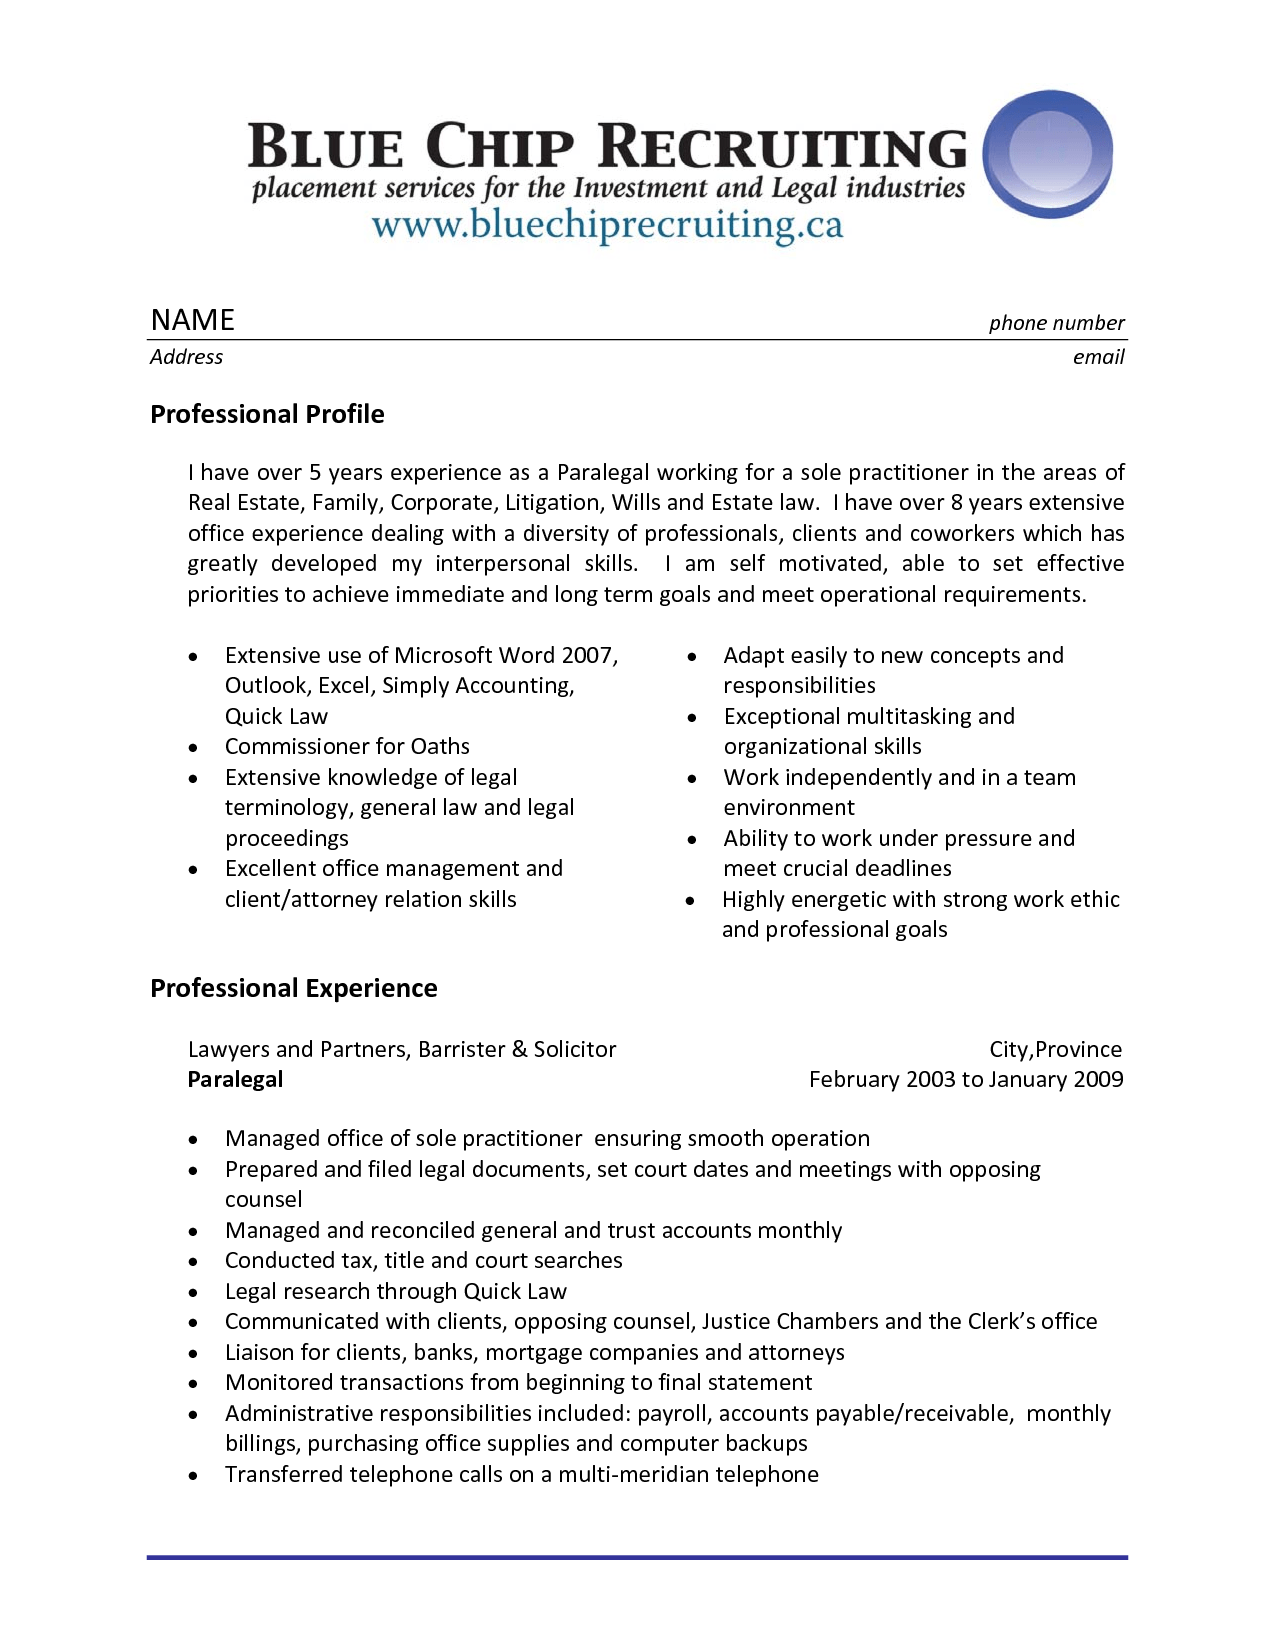 Sample Resume Legal Assistant Experience Professional Paralegal  Paralegal Skills Resume